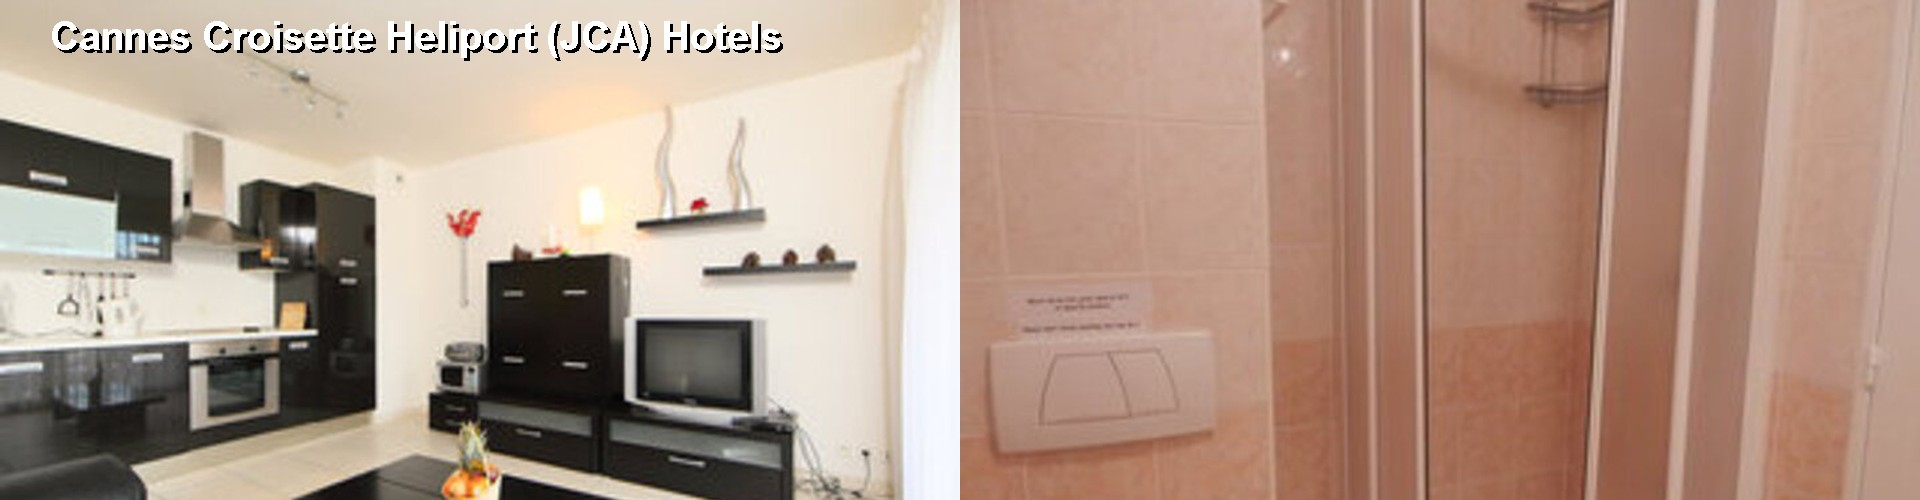 5 Best Hotels near Cannes Croisette Heliport (JCA)